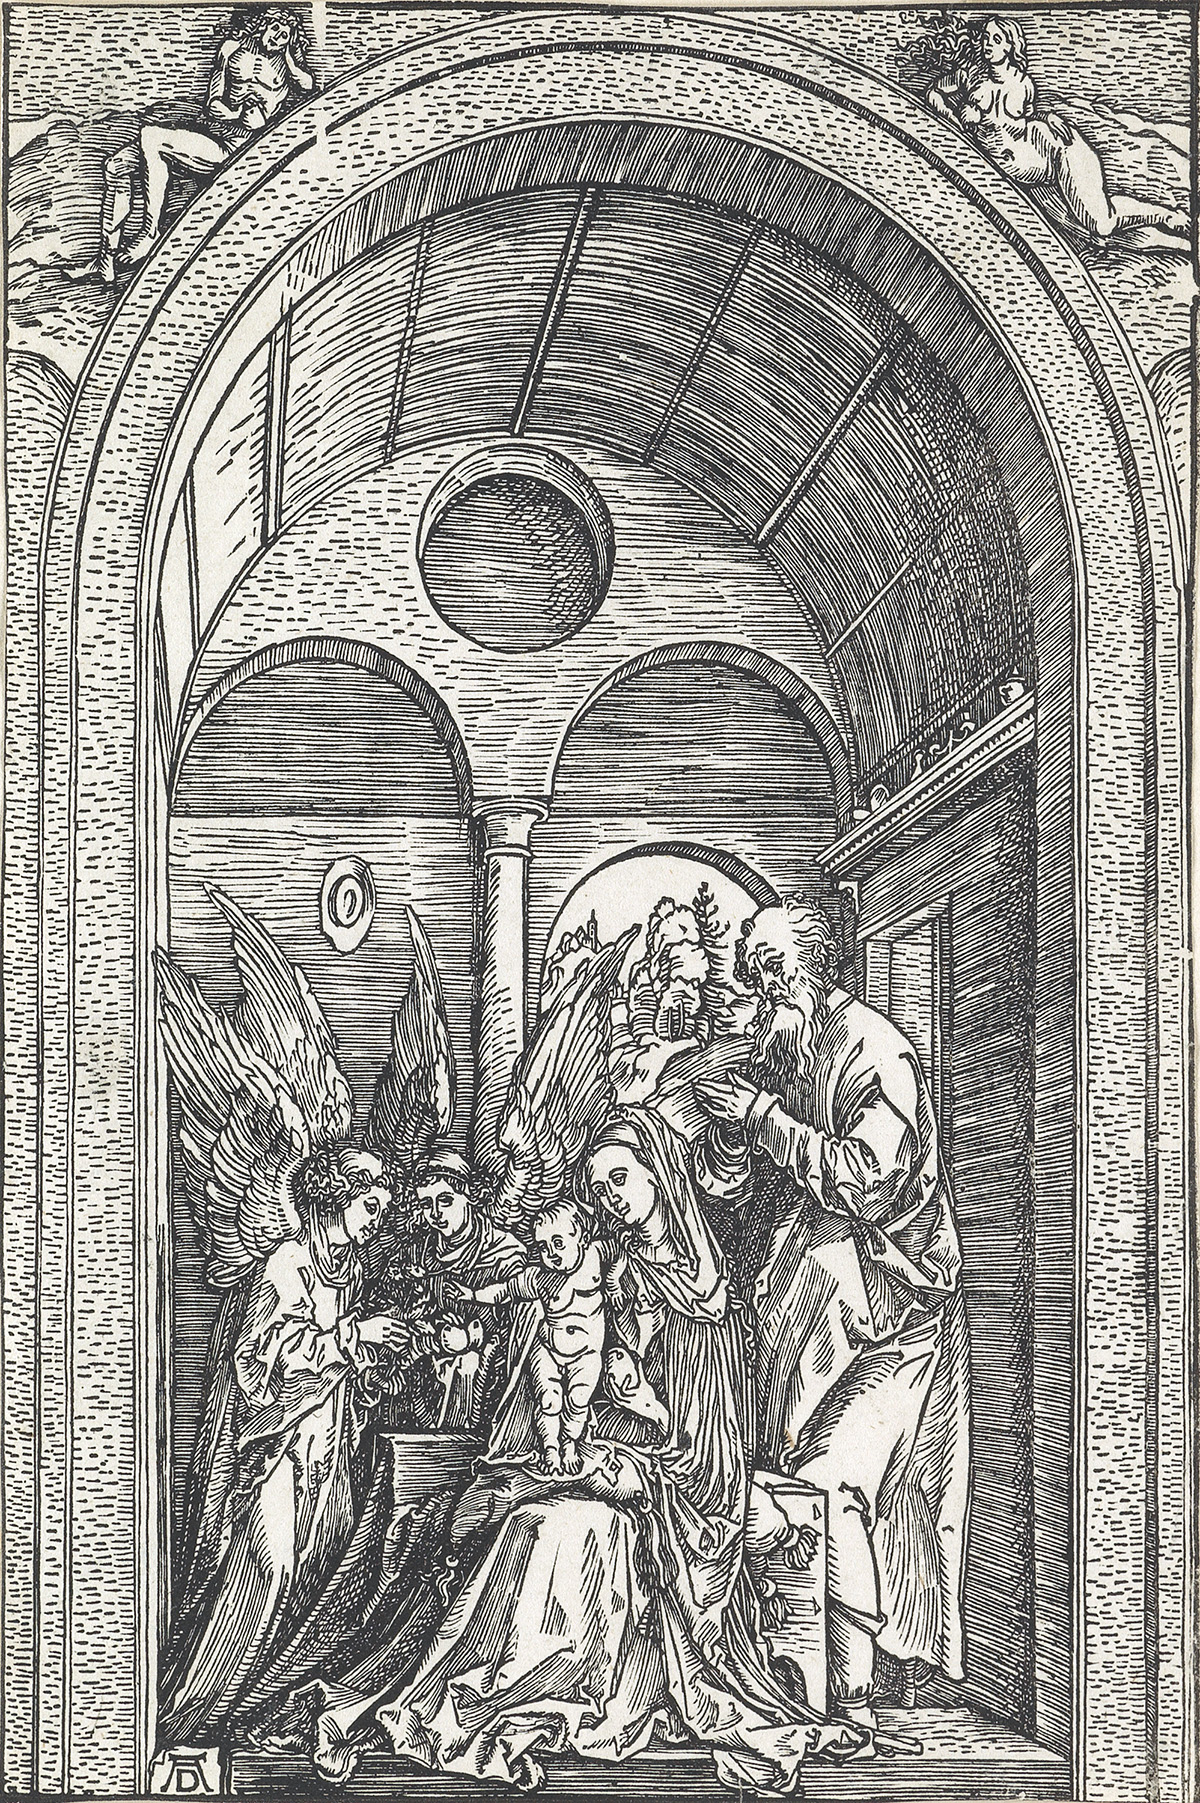 ALBRECHT-DÜRER-The-Holy-Family-with-Two-Angels-in-a-Vaulted-